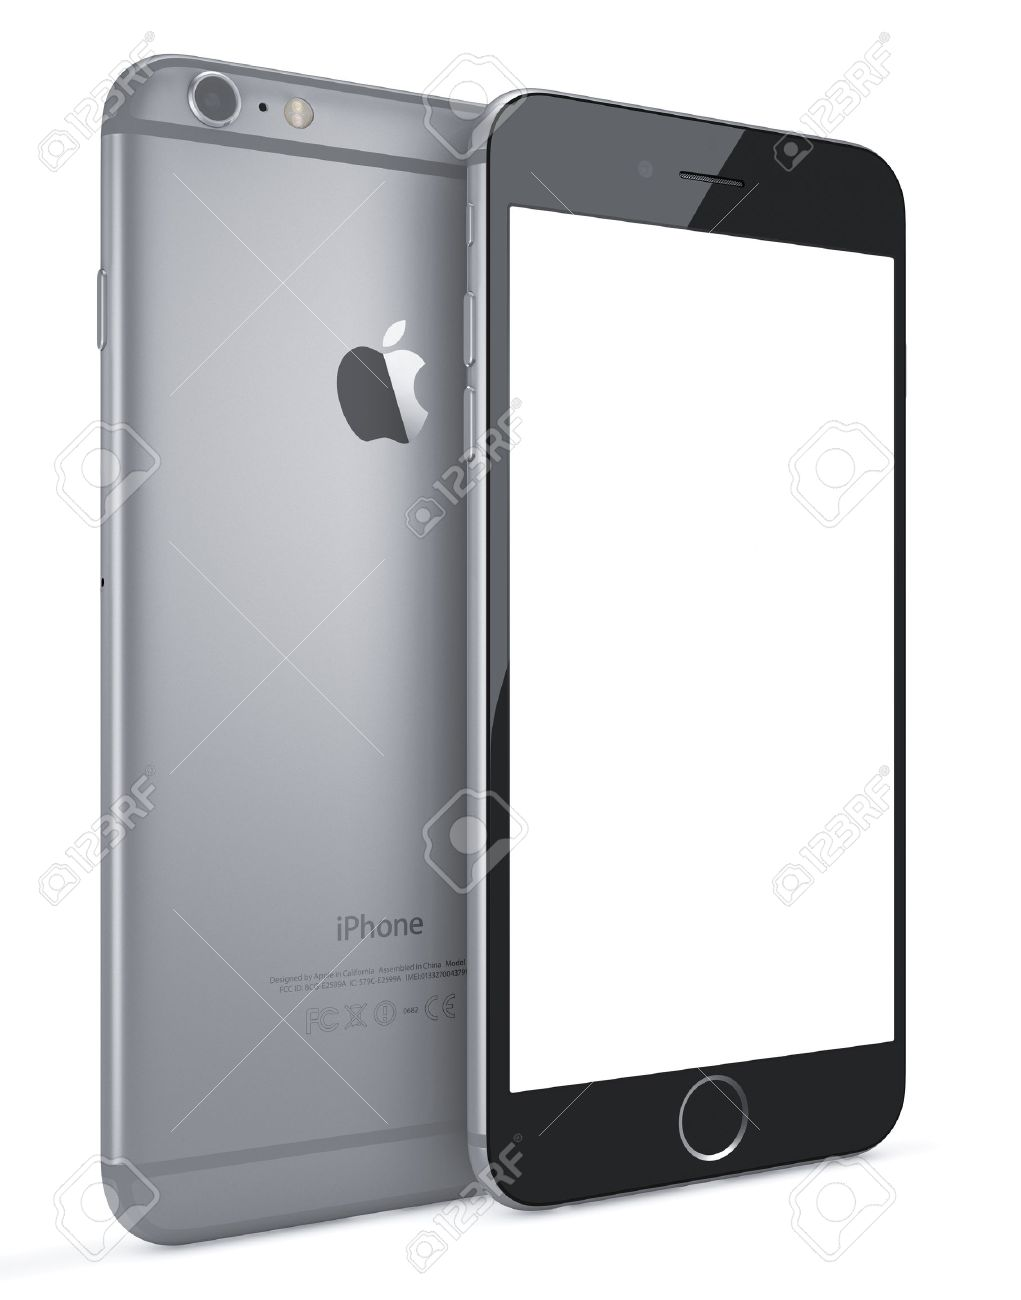 buy popular ddced b683b Apple Space Gray iPhone 6 Plus with blank screen.The new iPhone..